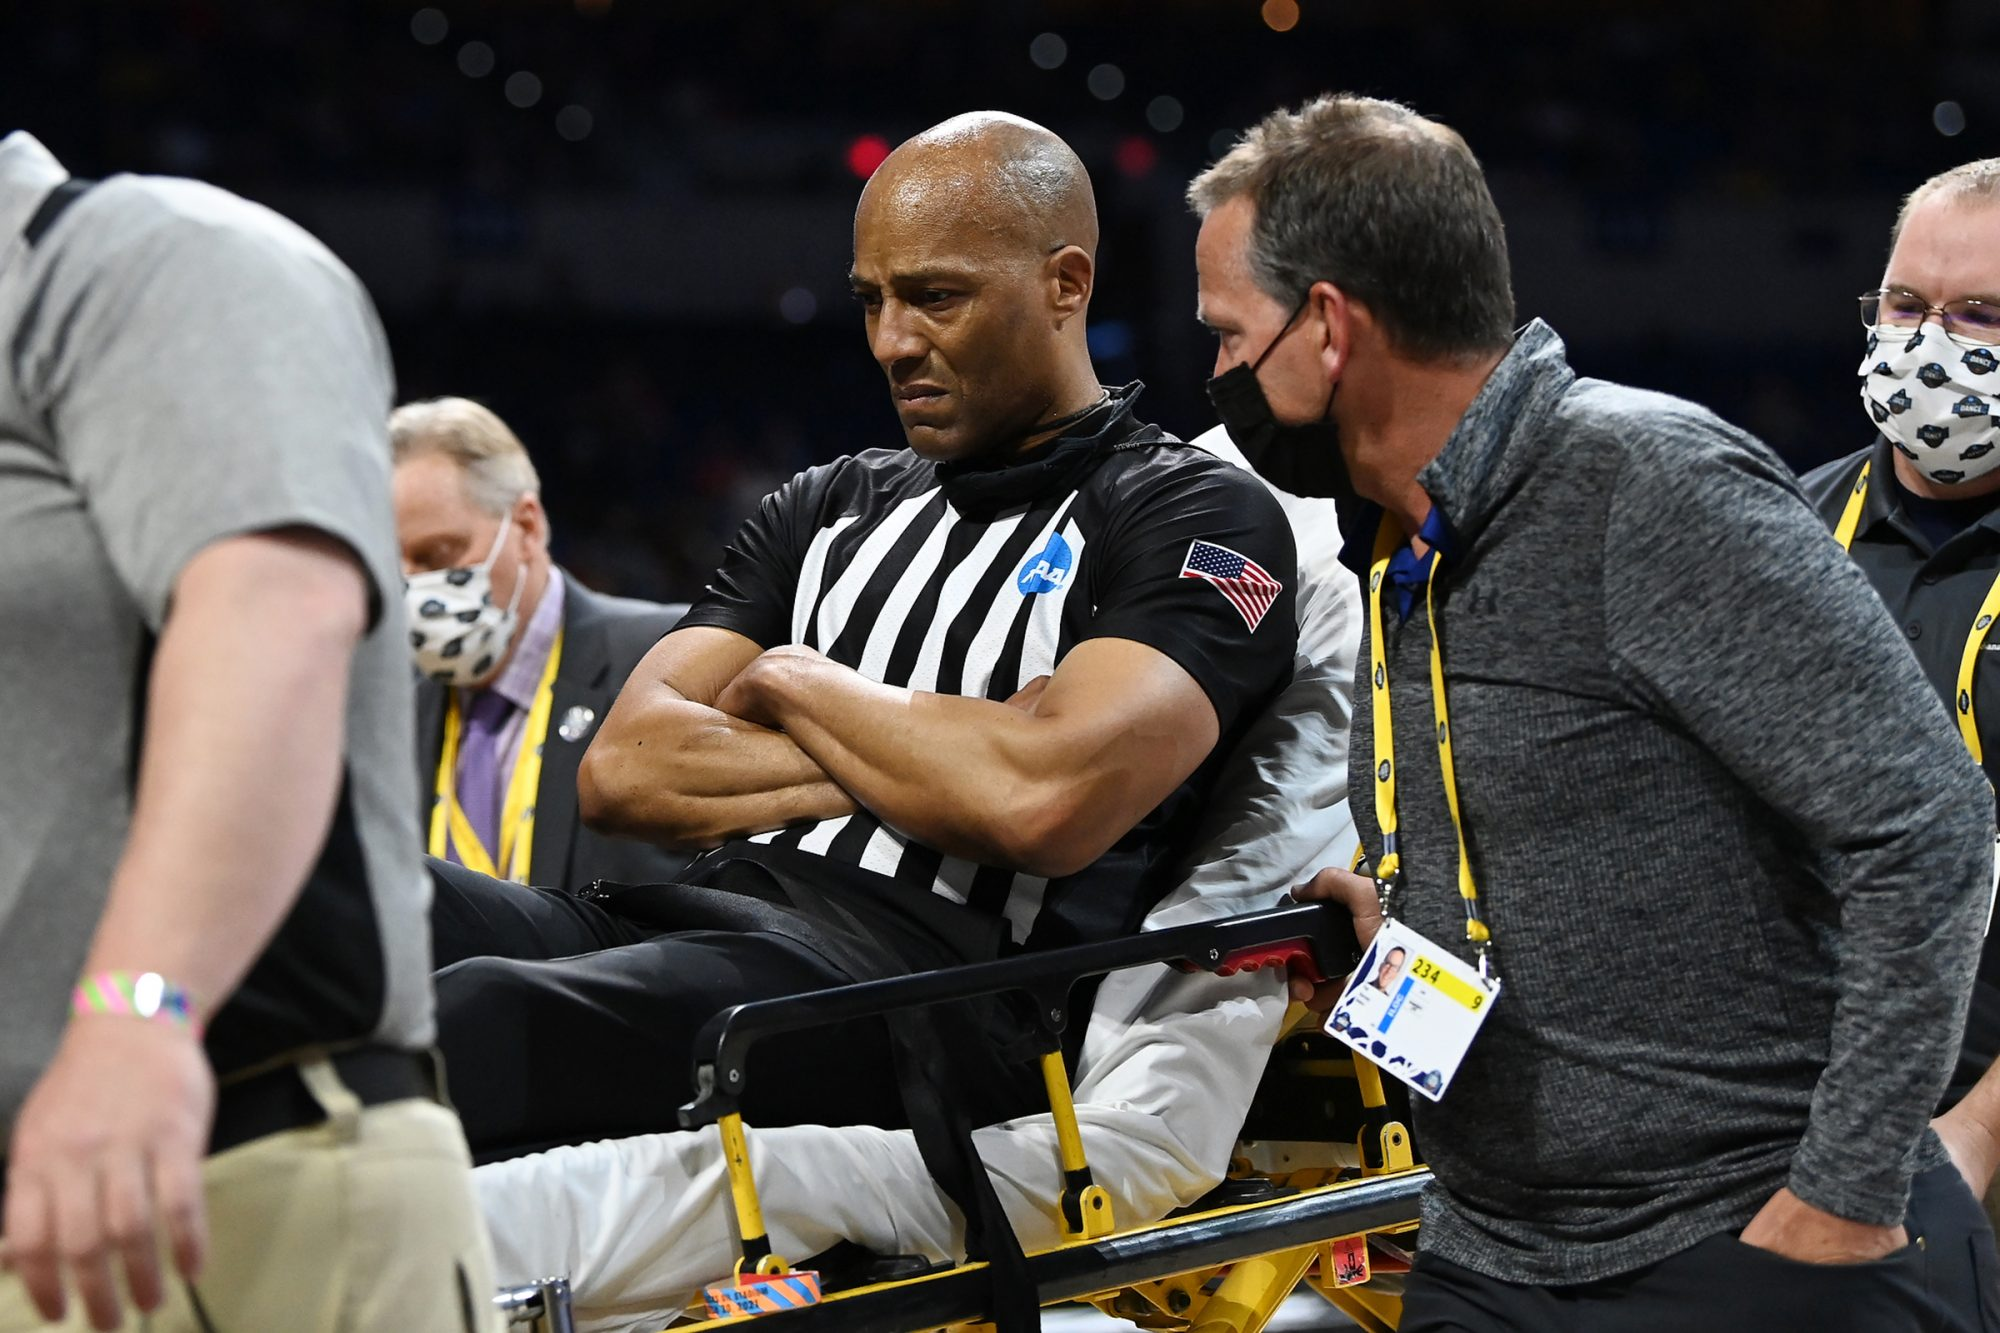 Referee Bert Smith is wheeled away after collapsing in the Elite Eight round game of the 2021 NCAA Division I Men's Basketball Tournament game between the Gonzaga Bulldogs and the USC Trojans at Lucas Oil Stadium on March 30, 2021 in Indianapolis, Indiana